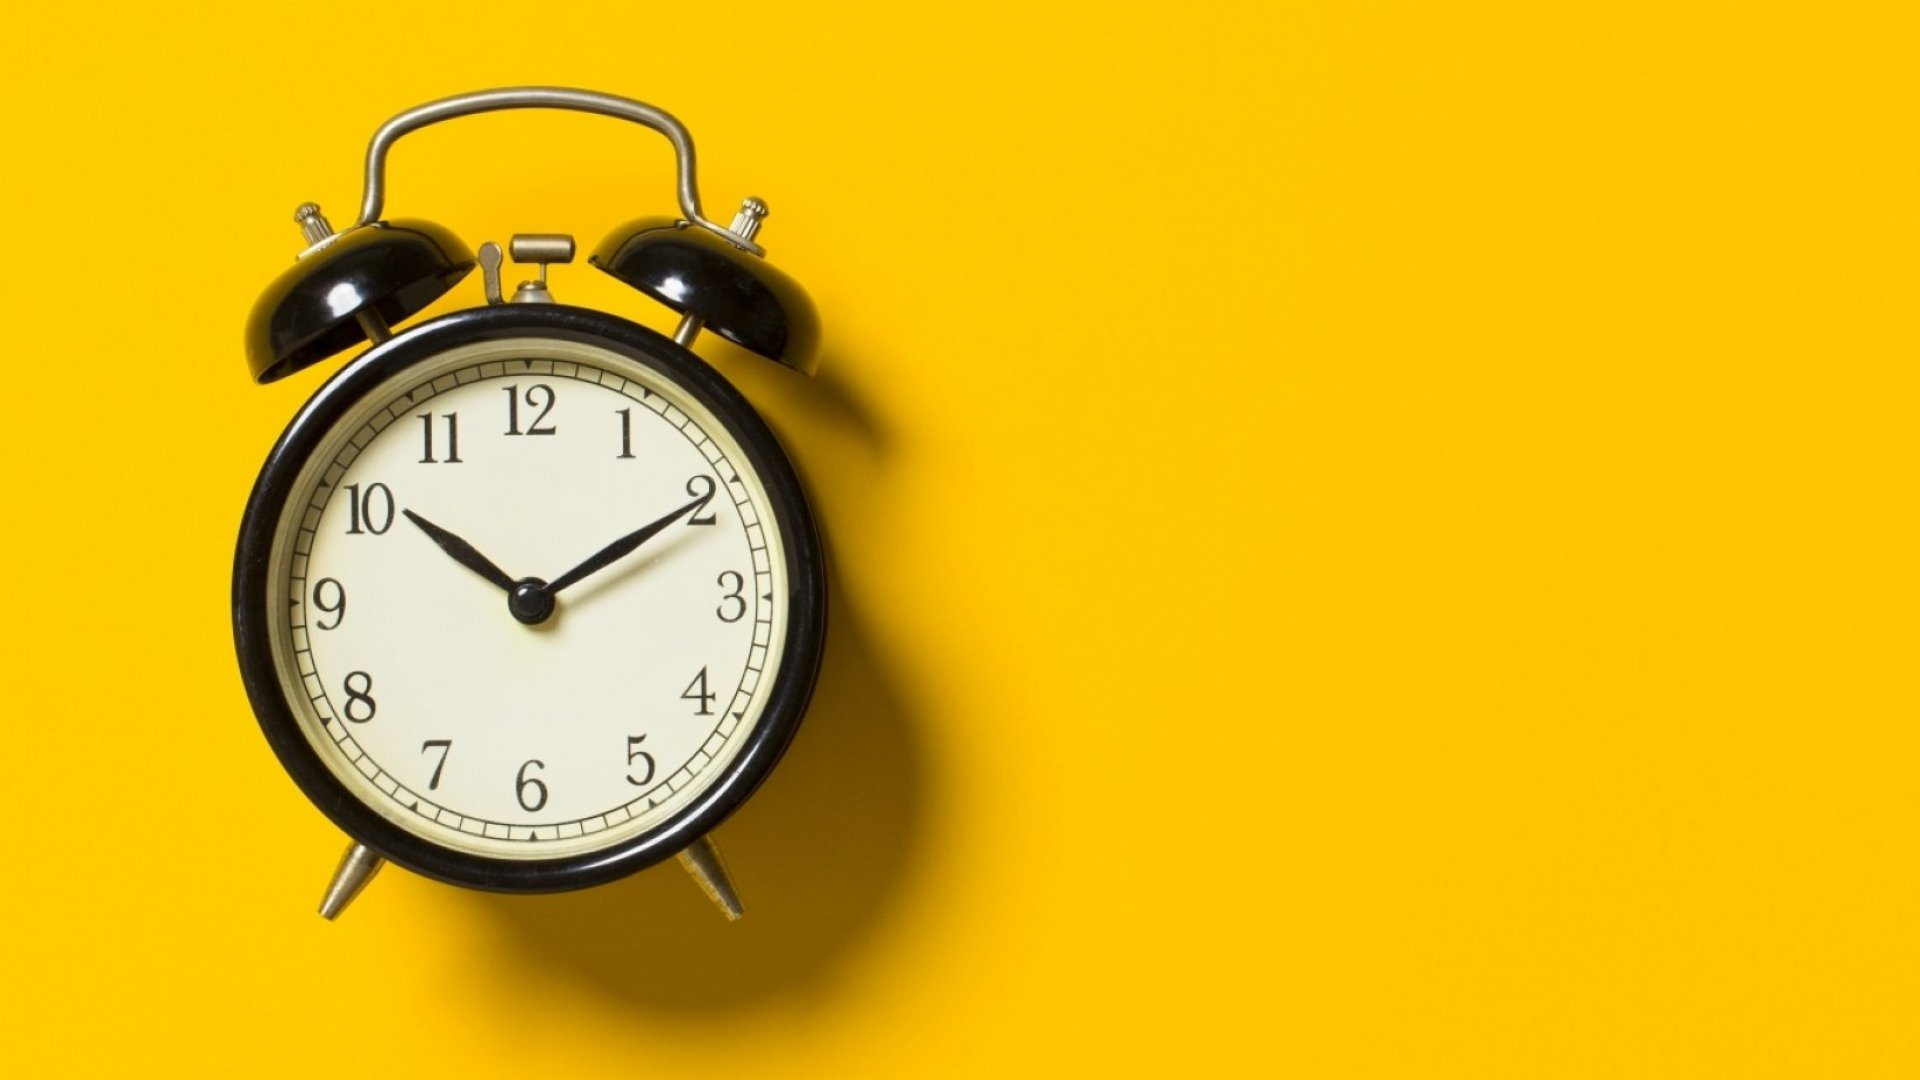 Want to Be More Productive? Follow This Advice From Tim Ferriss